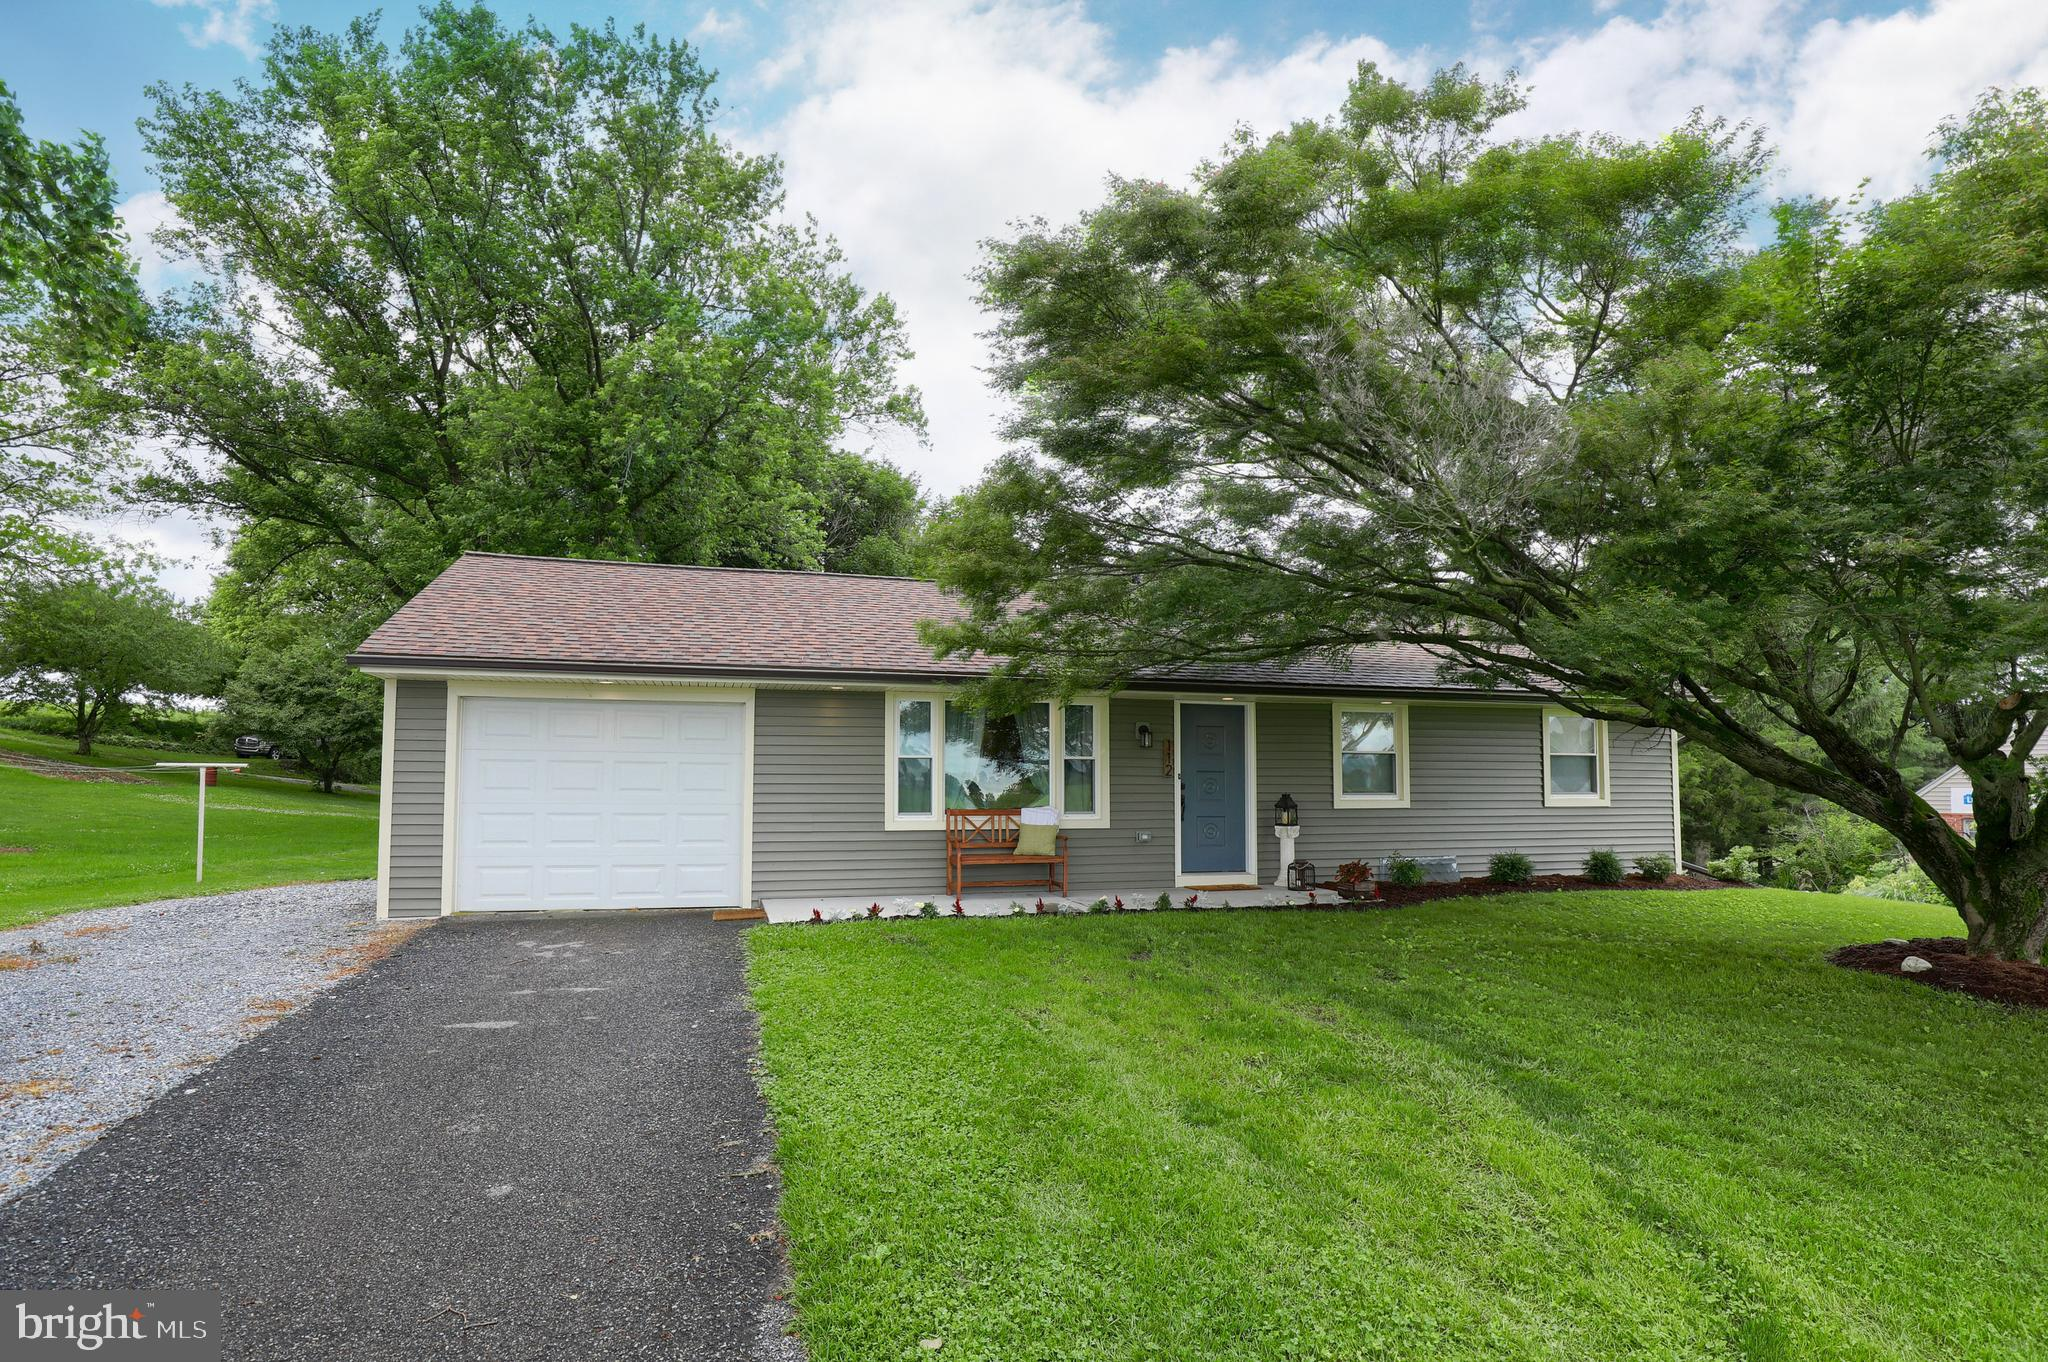 112 S RONKS ROAD, RONKS, PA 17572